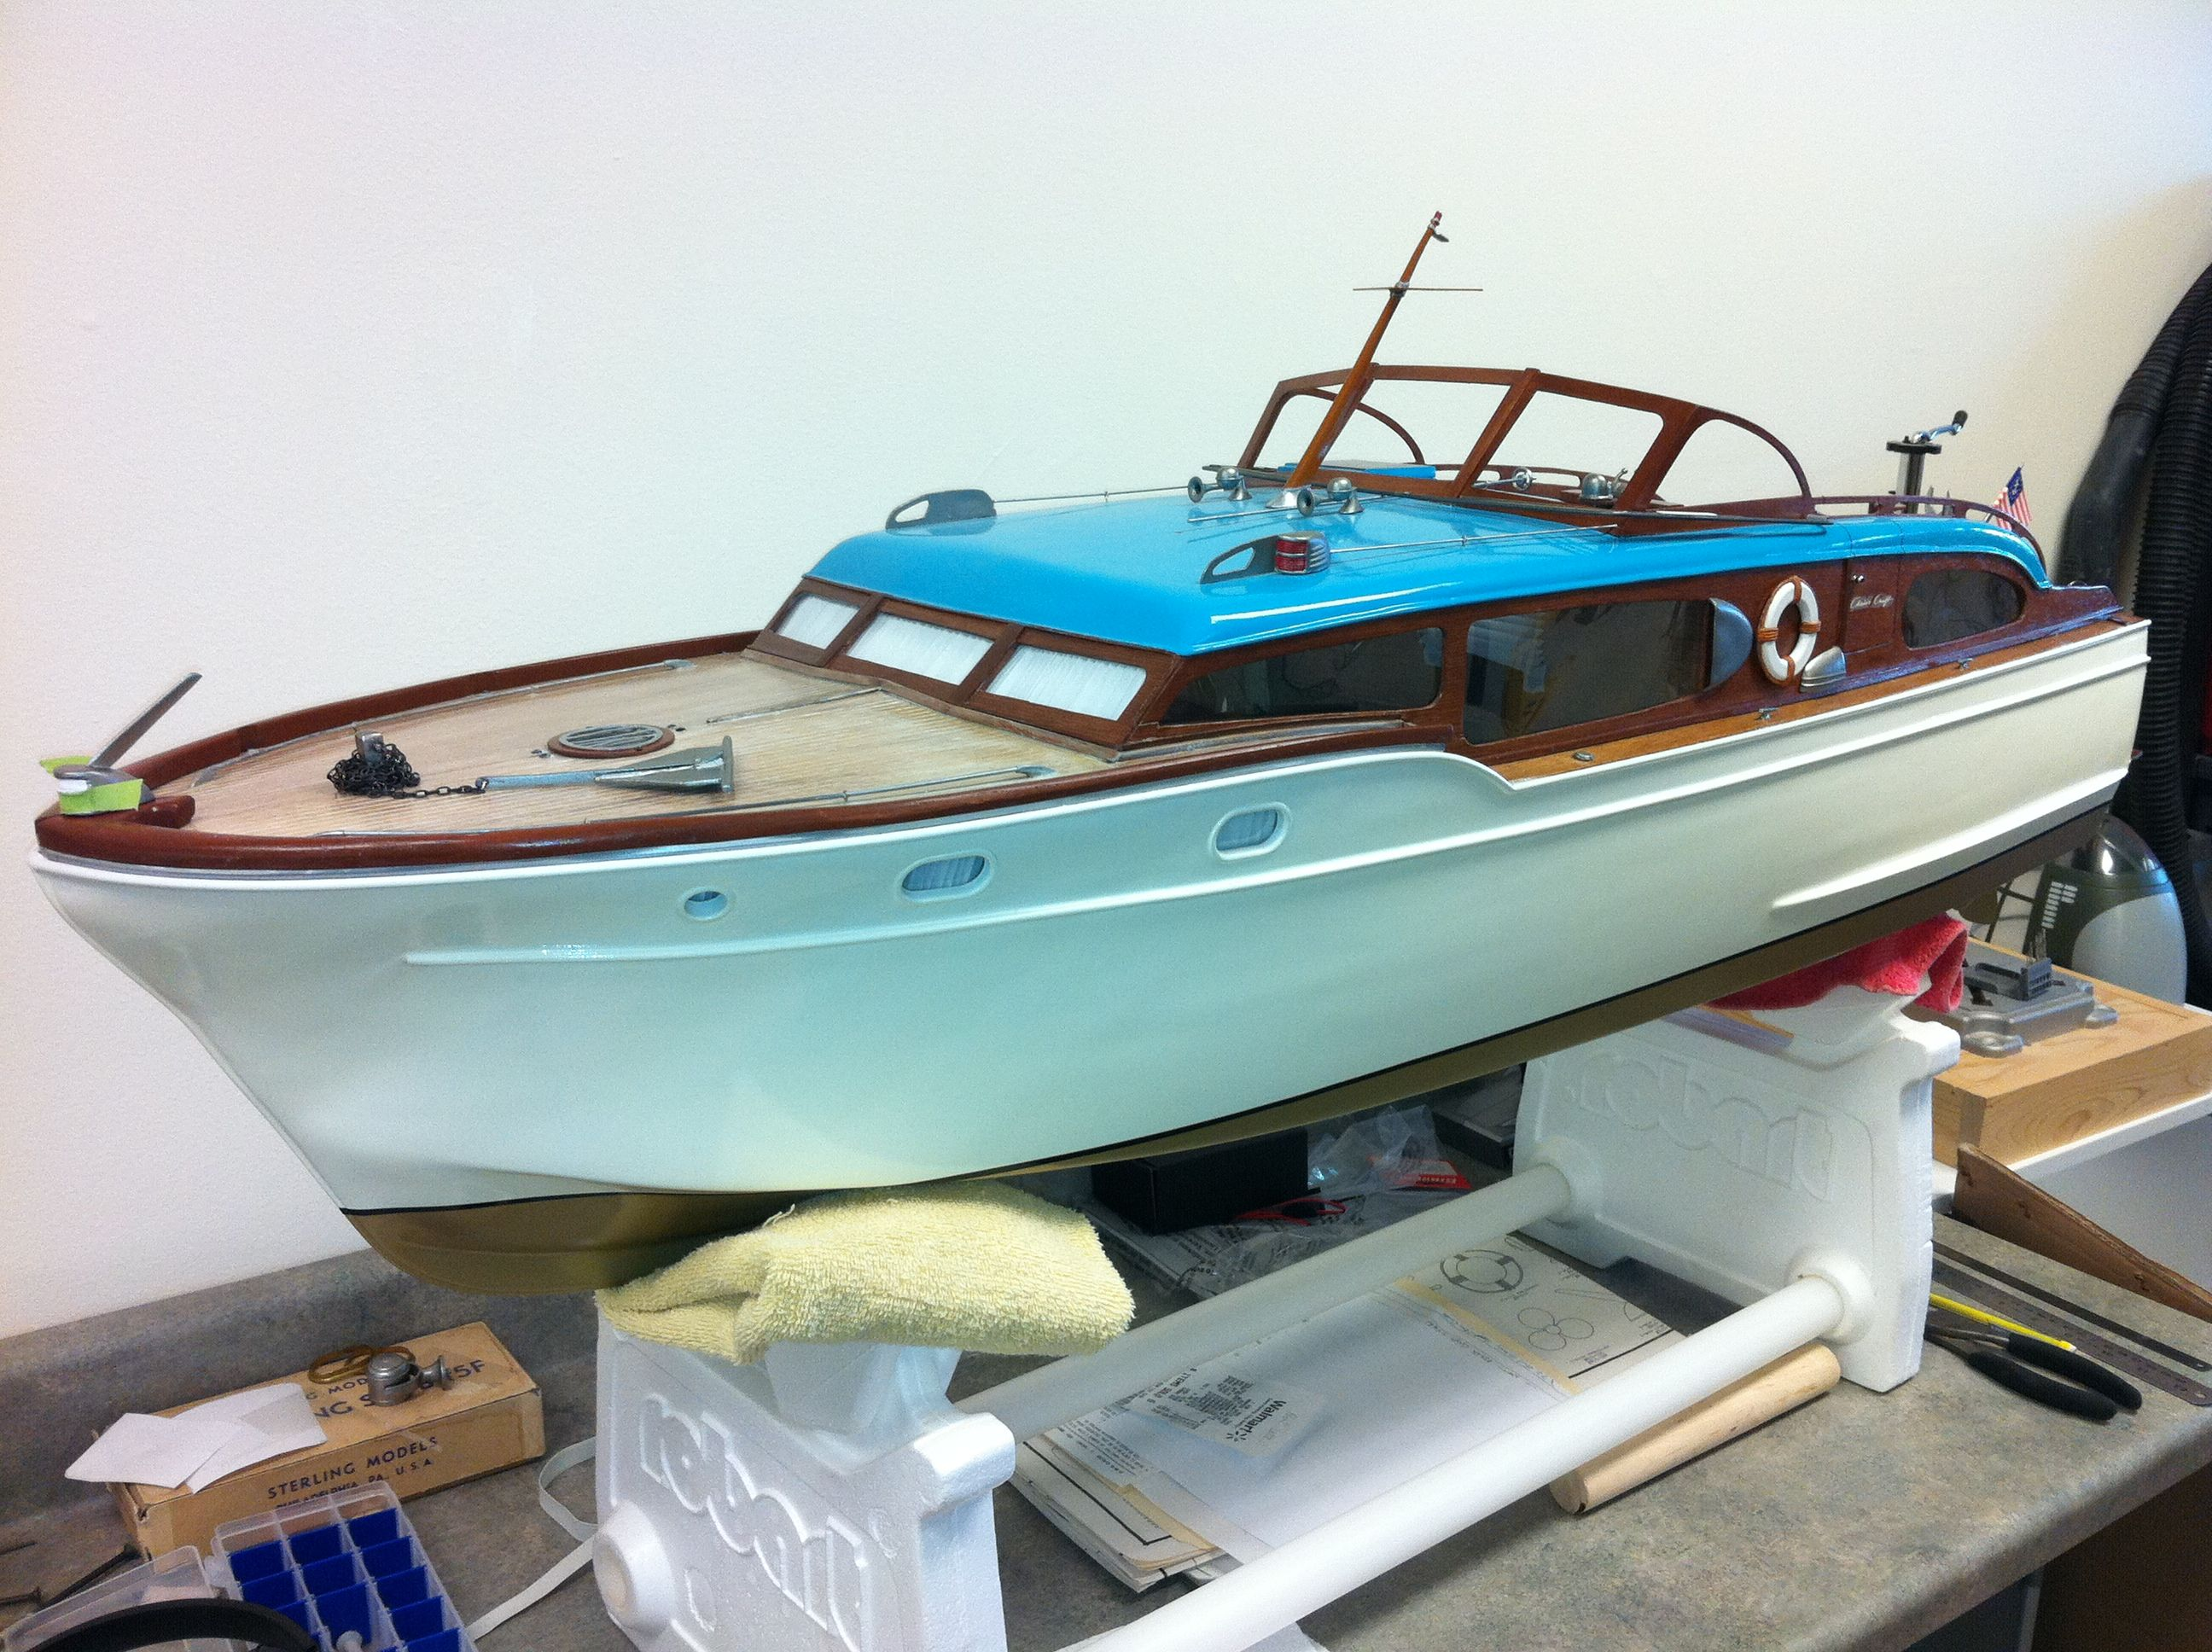 Model RC boat being built for a client